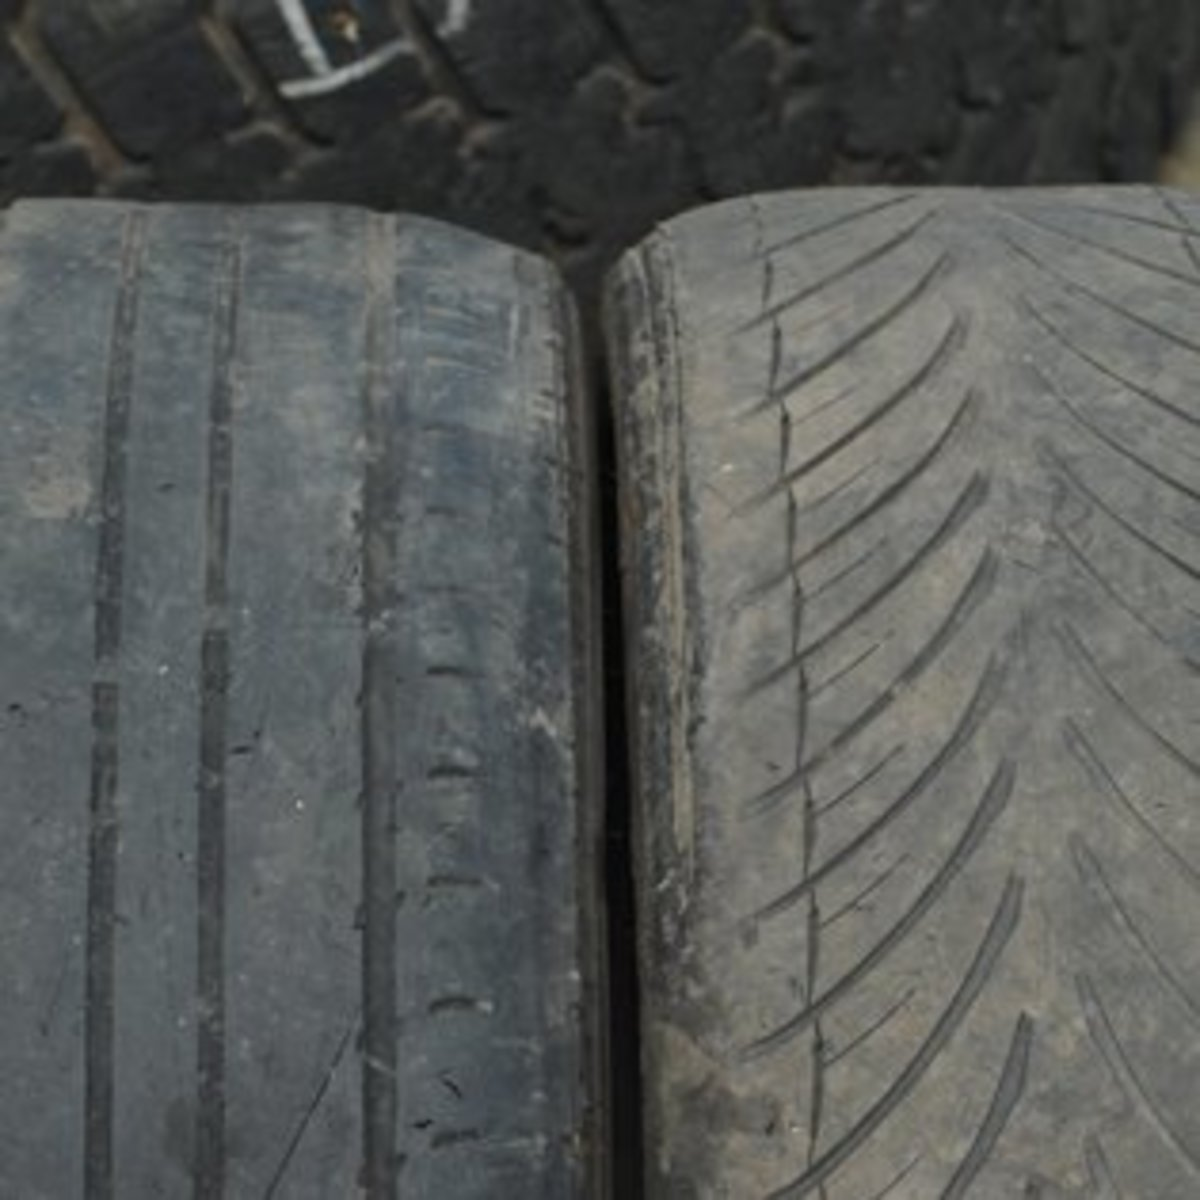 The dealer should replace any worn tyres of reduce the price of the car